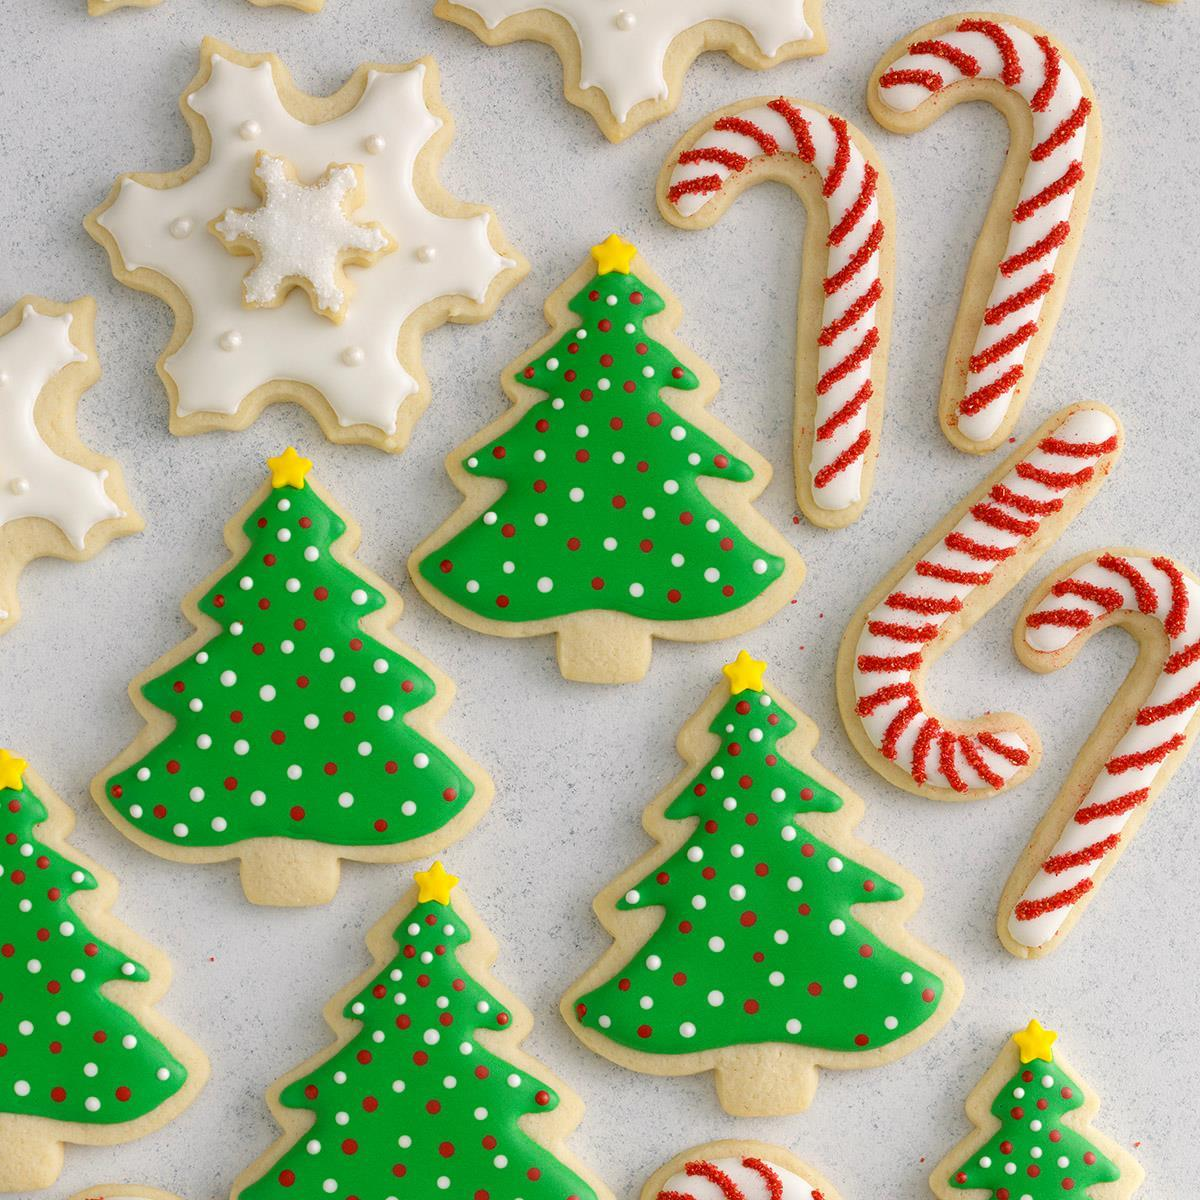 Decorated Christmas Cutout Cookies Recipe | Taste of Home